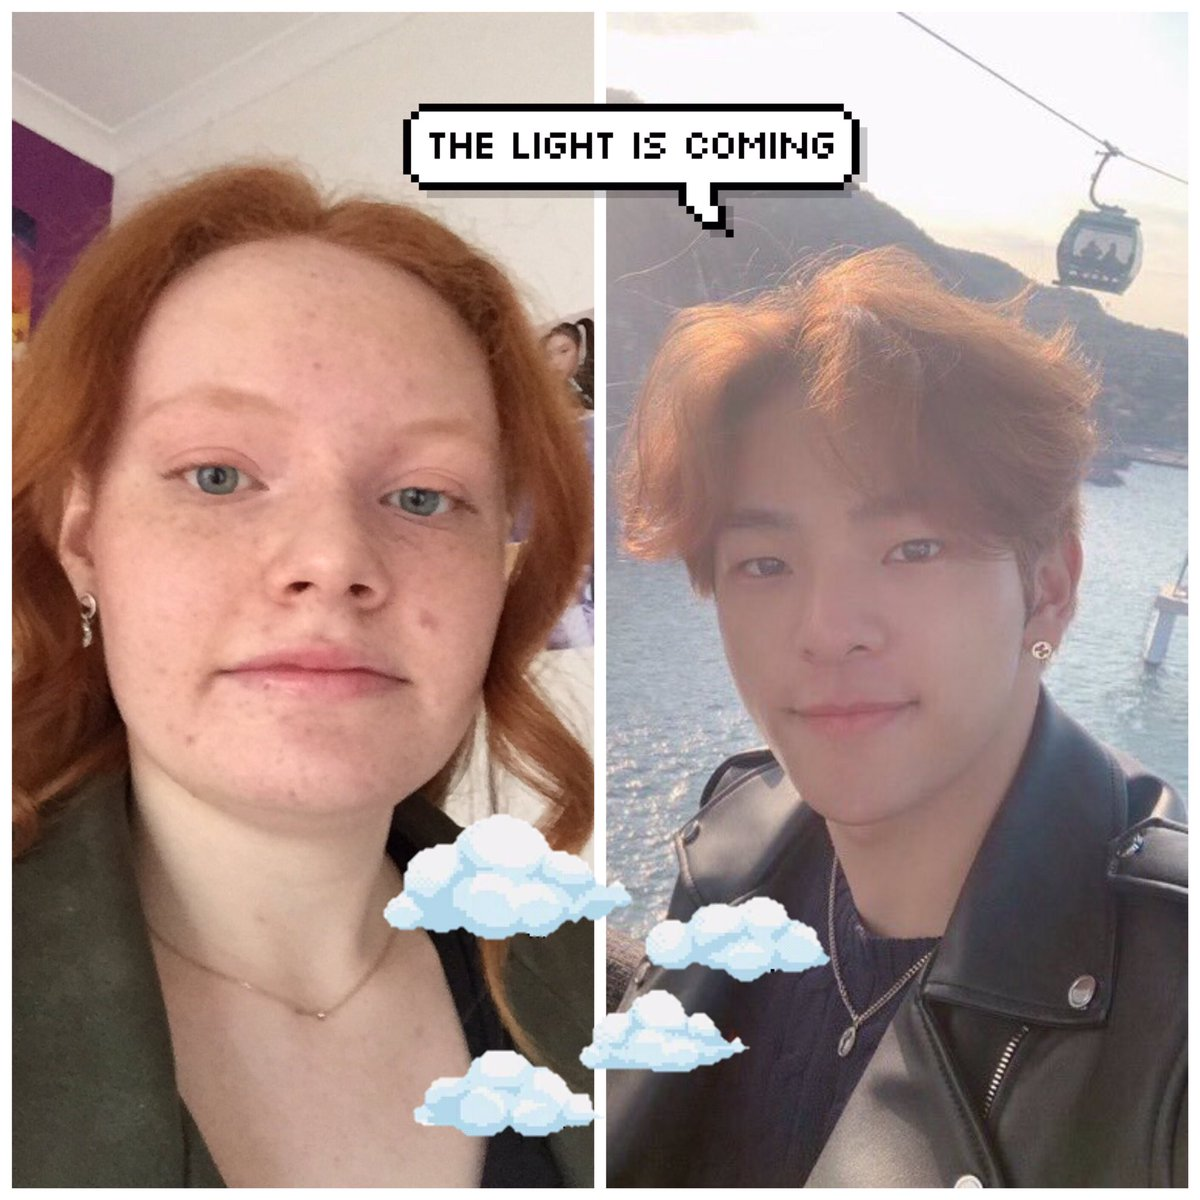 ~The light is coming~ ✨💖 #SSD #StaySelcaDay @Stray_Kids   (Accidentally deleted my ssd from the other day so don't pay attention to this lol)